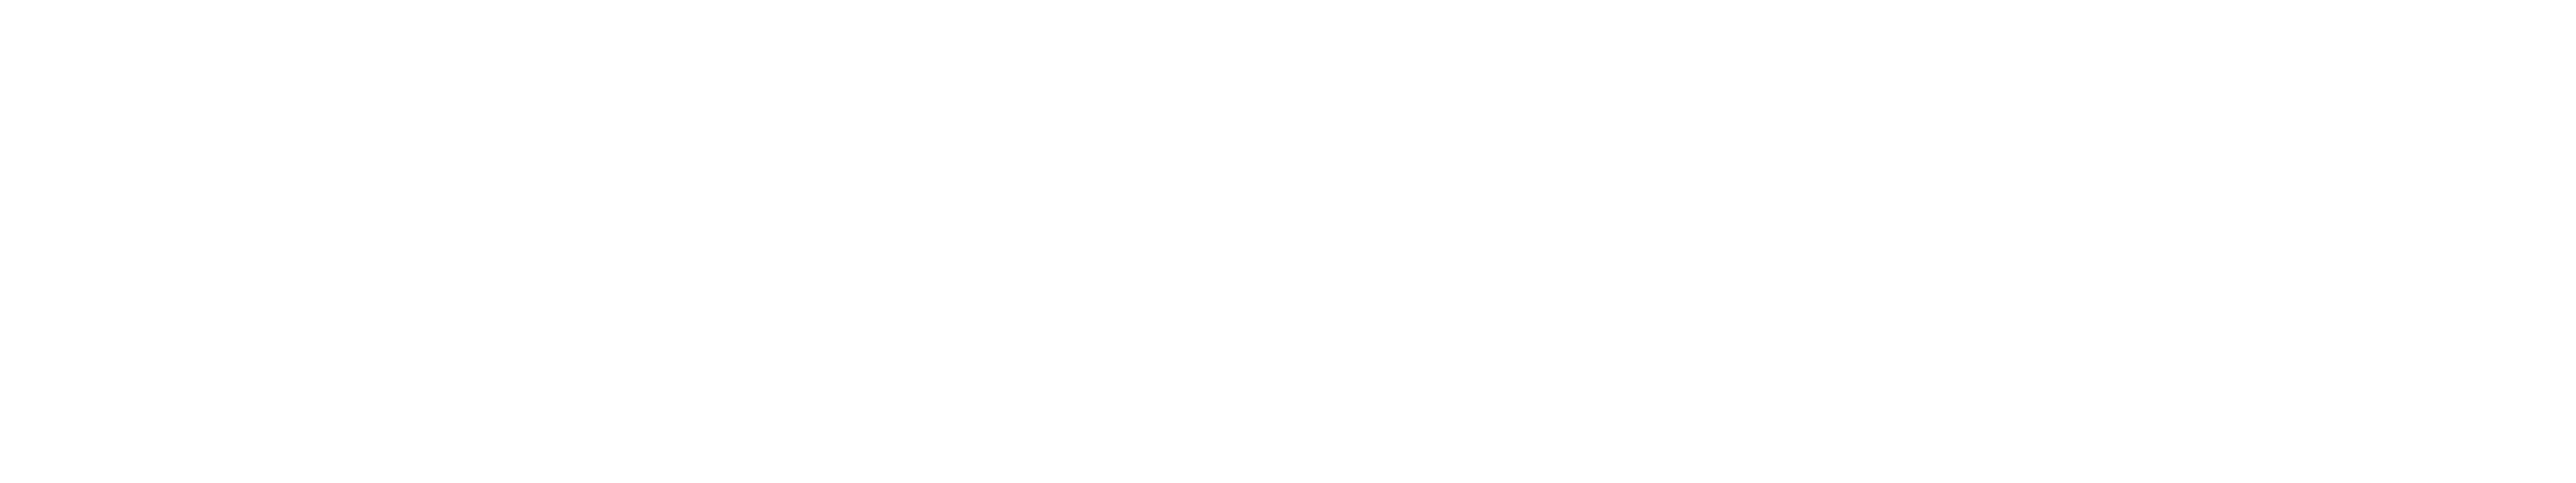 Harrah Chamber of Commerce